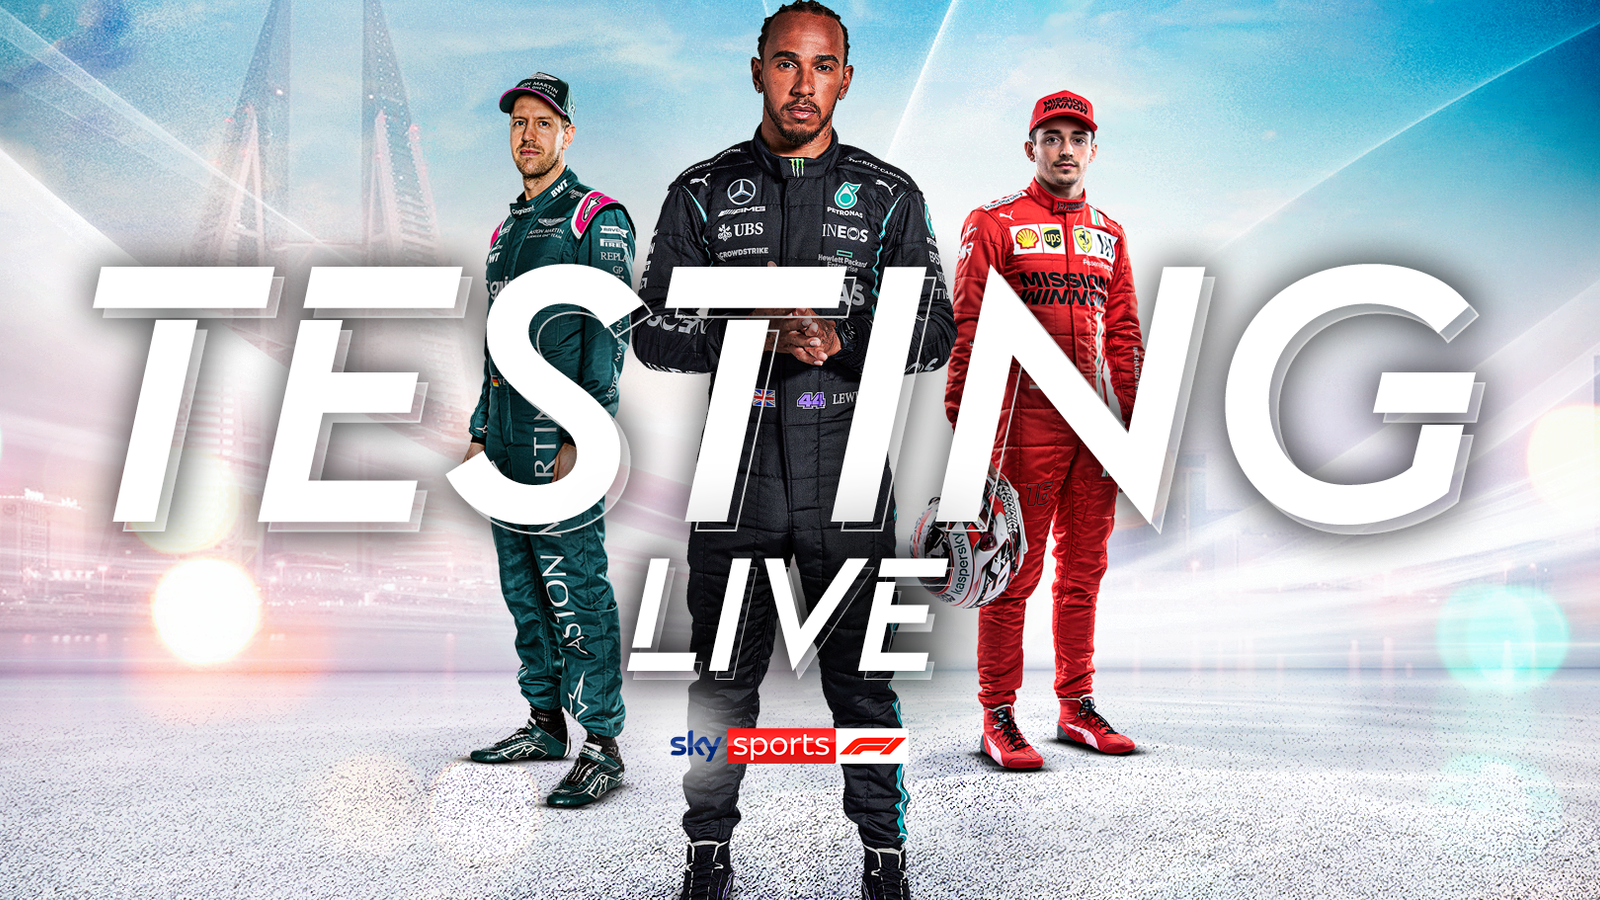 F1 Testing live on Sky Sports F1 with three days of track action in Bahrain as teams and drivers hit the track